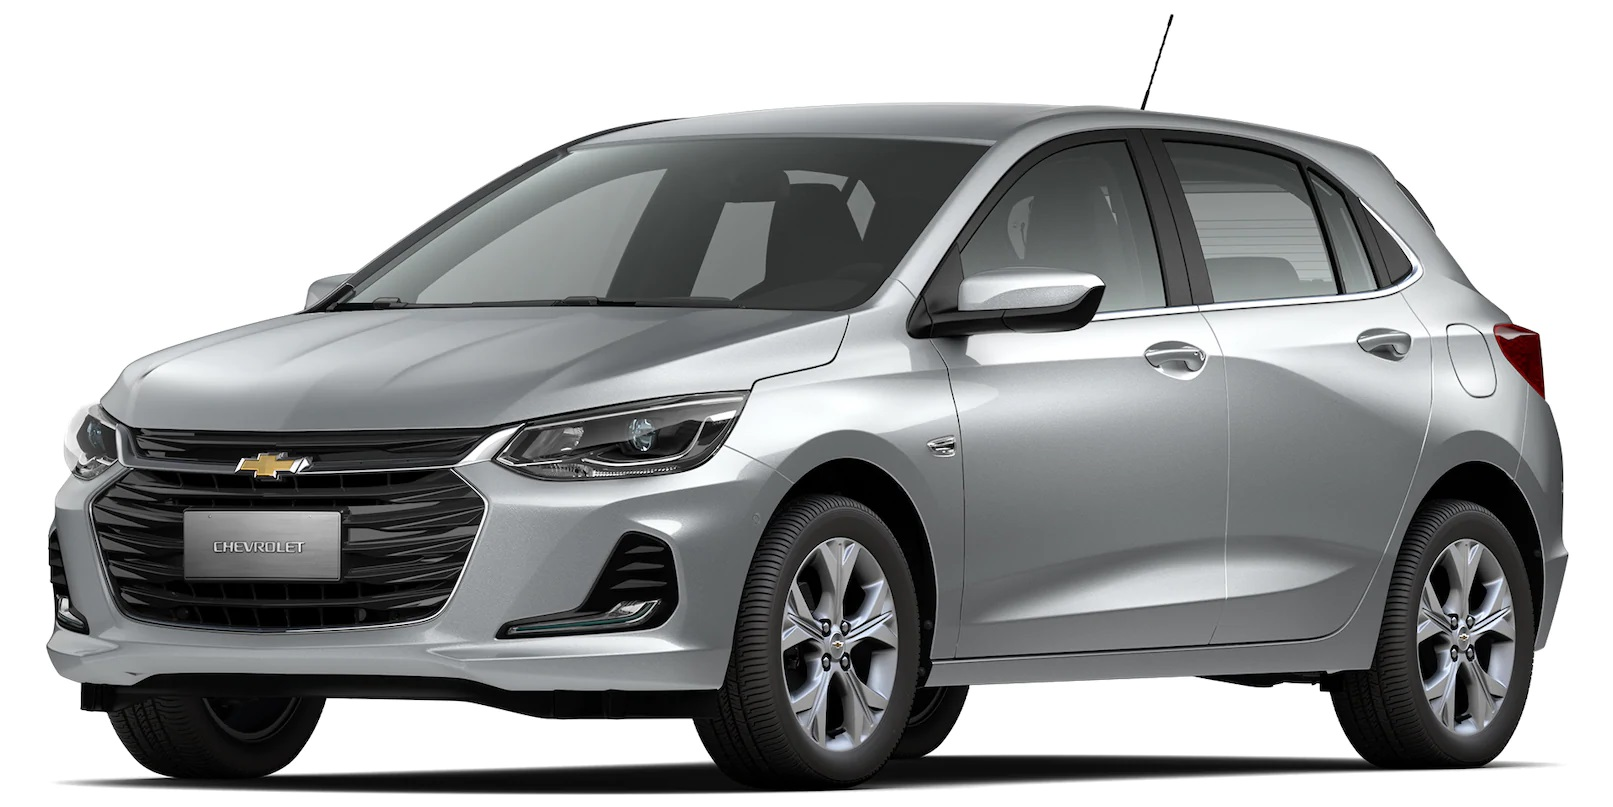 CHEVROLET ONIX PREMIER 1.0 TURBO 2020